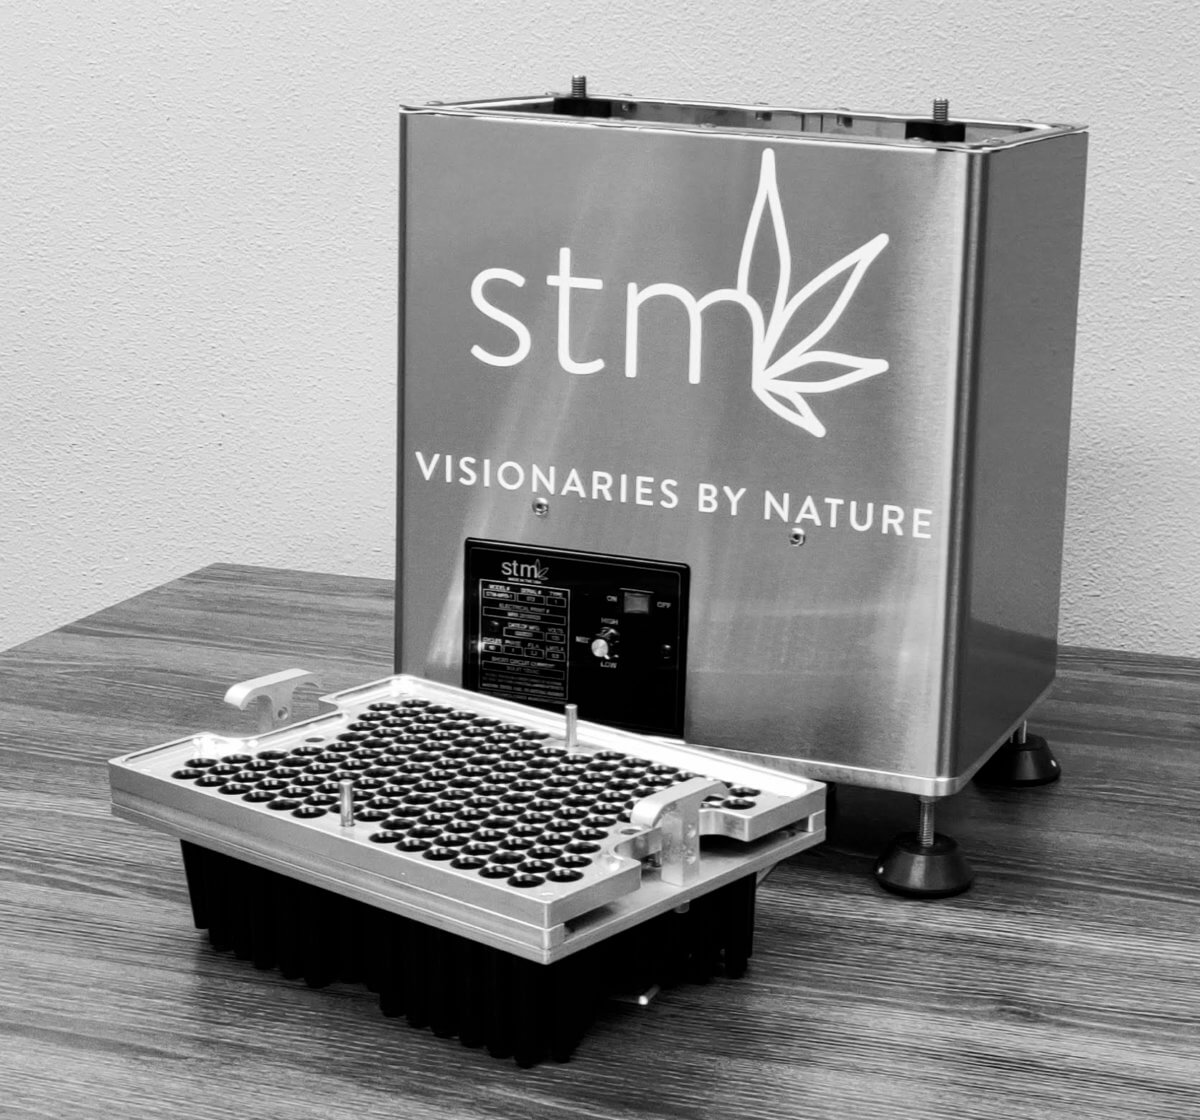 STM Canna Announces the Launch of Mini RocketBox Pre-Roll Machine